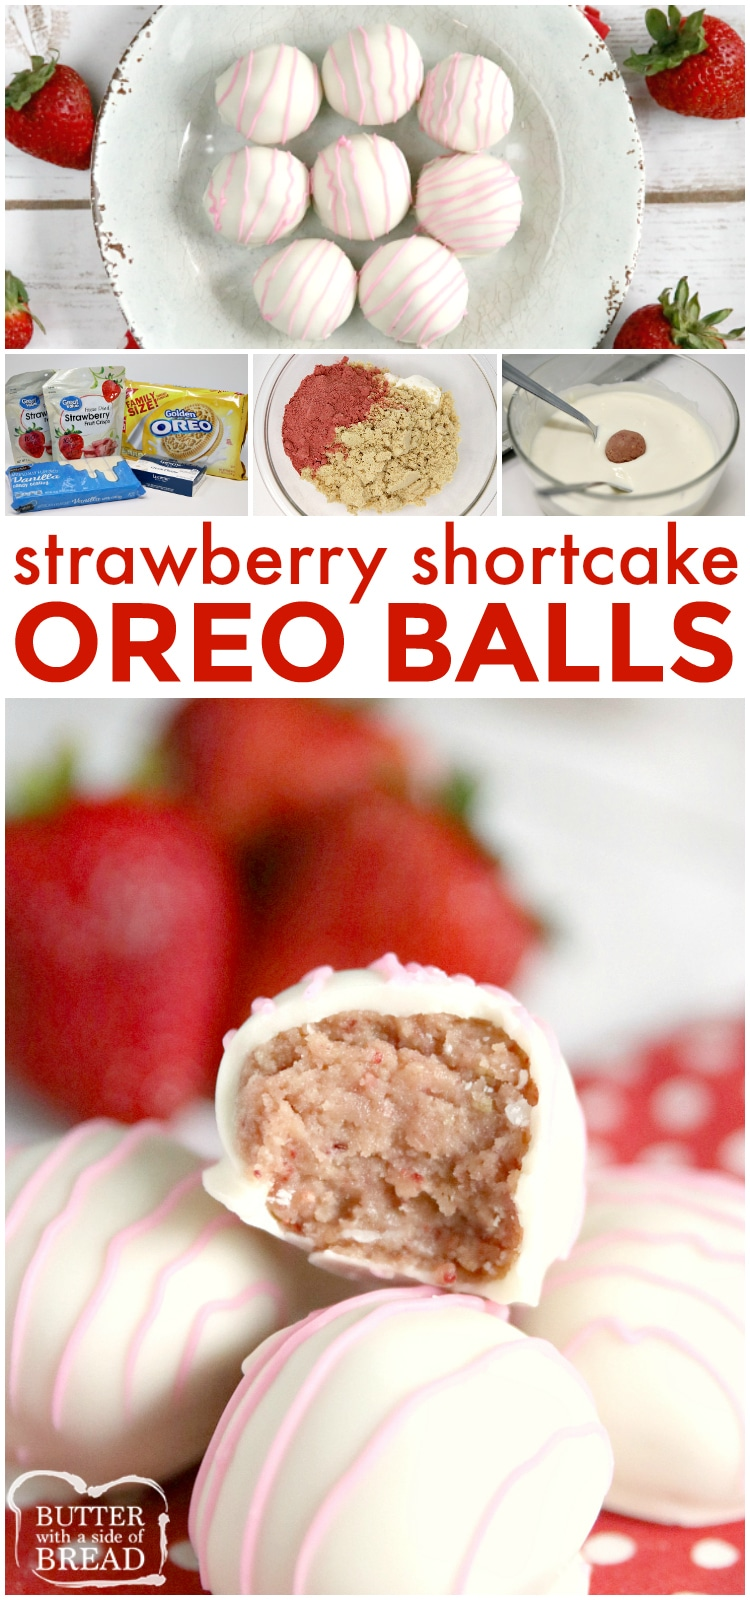 Strawberry Shortcake Oreo Balls are made with just 4 ingredients with no baking required! Made in just a few minutes with freeze dried strawberries and Golden Oreo cookies!